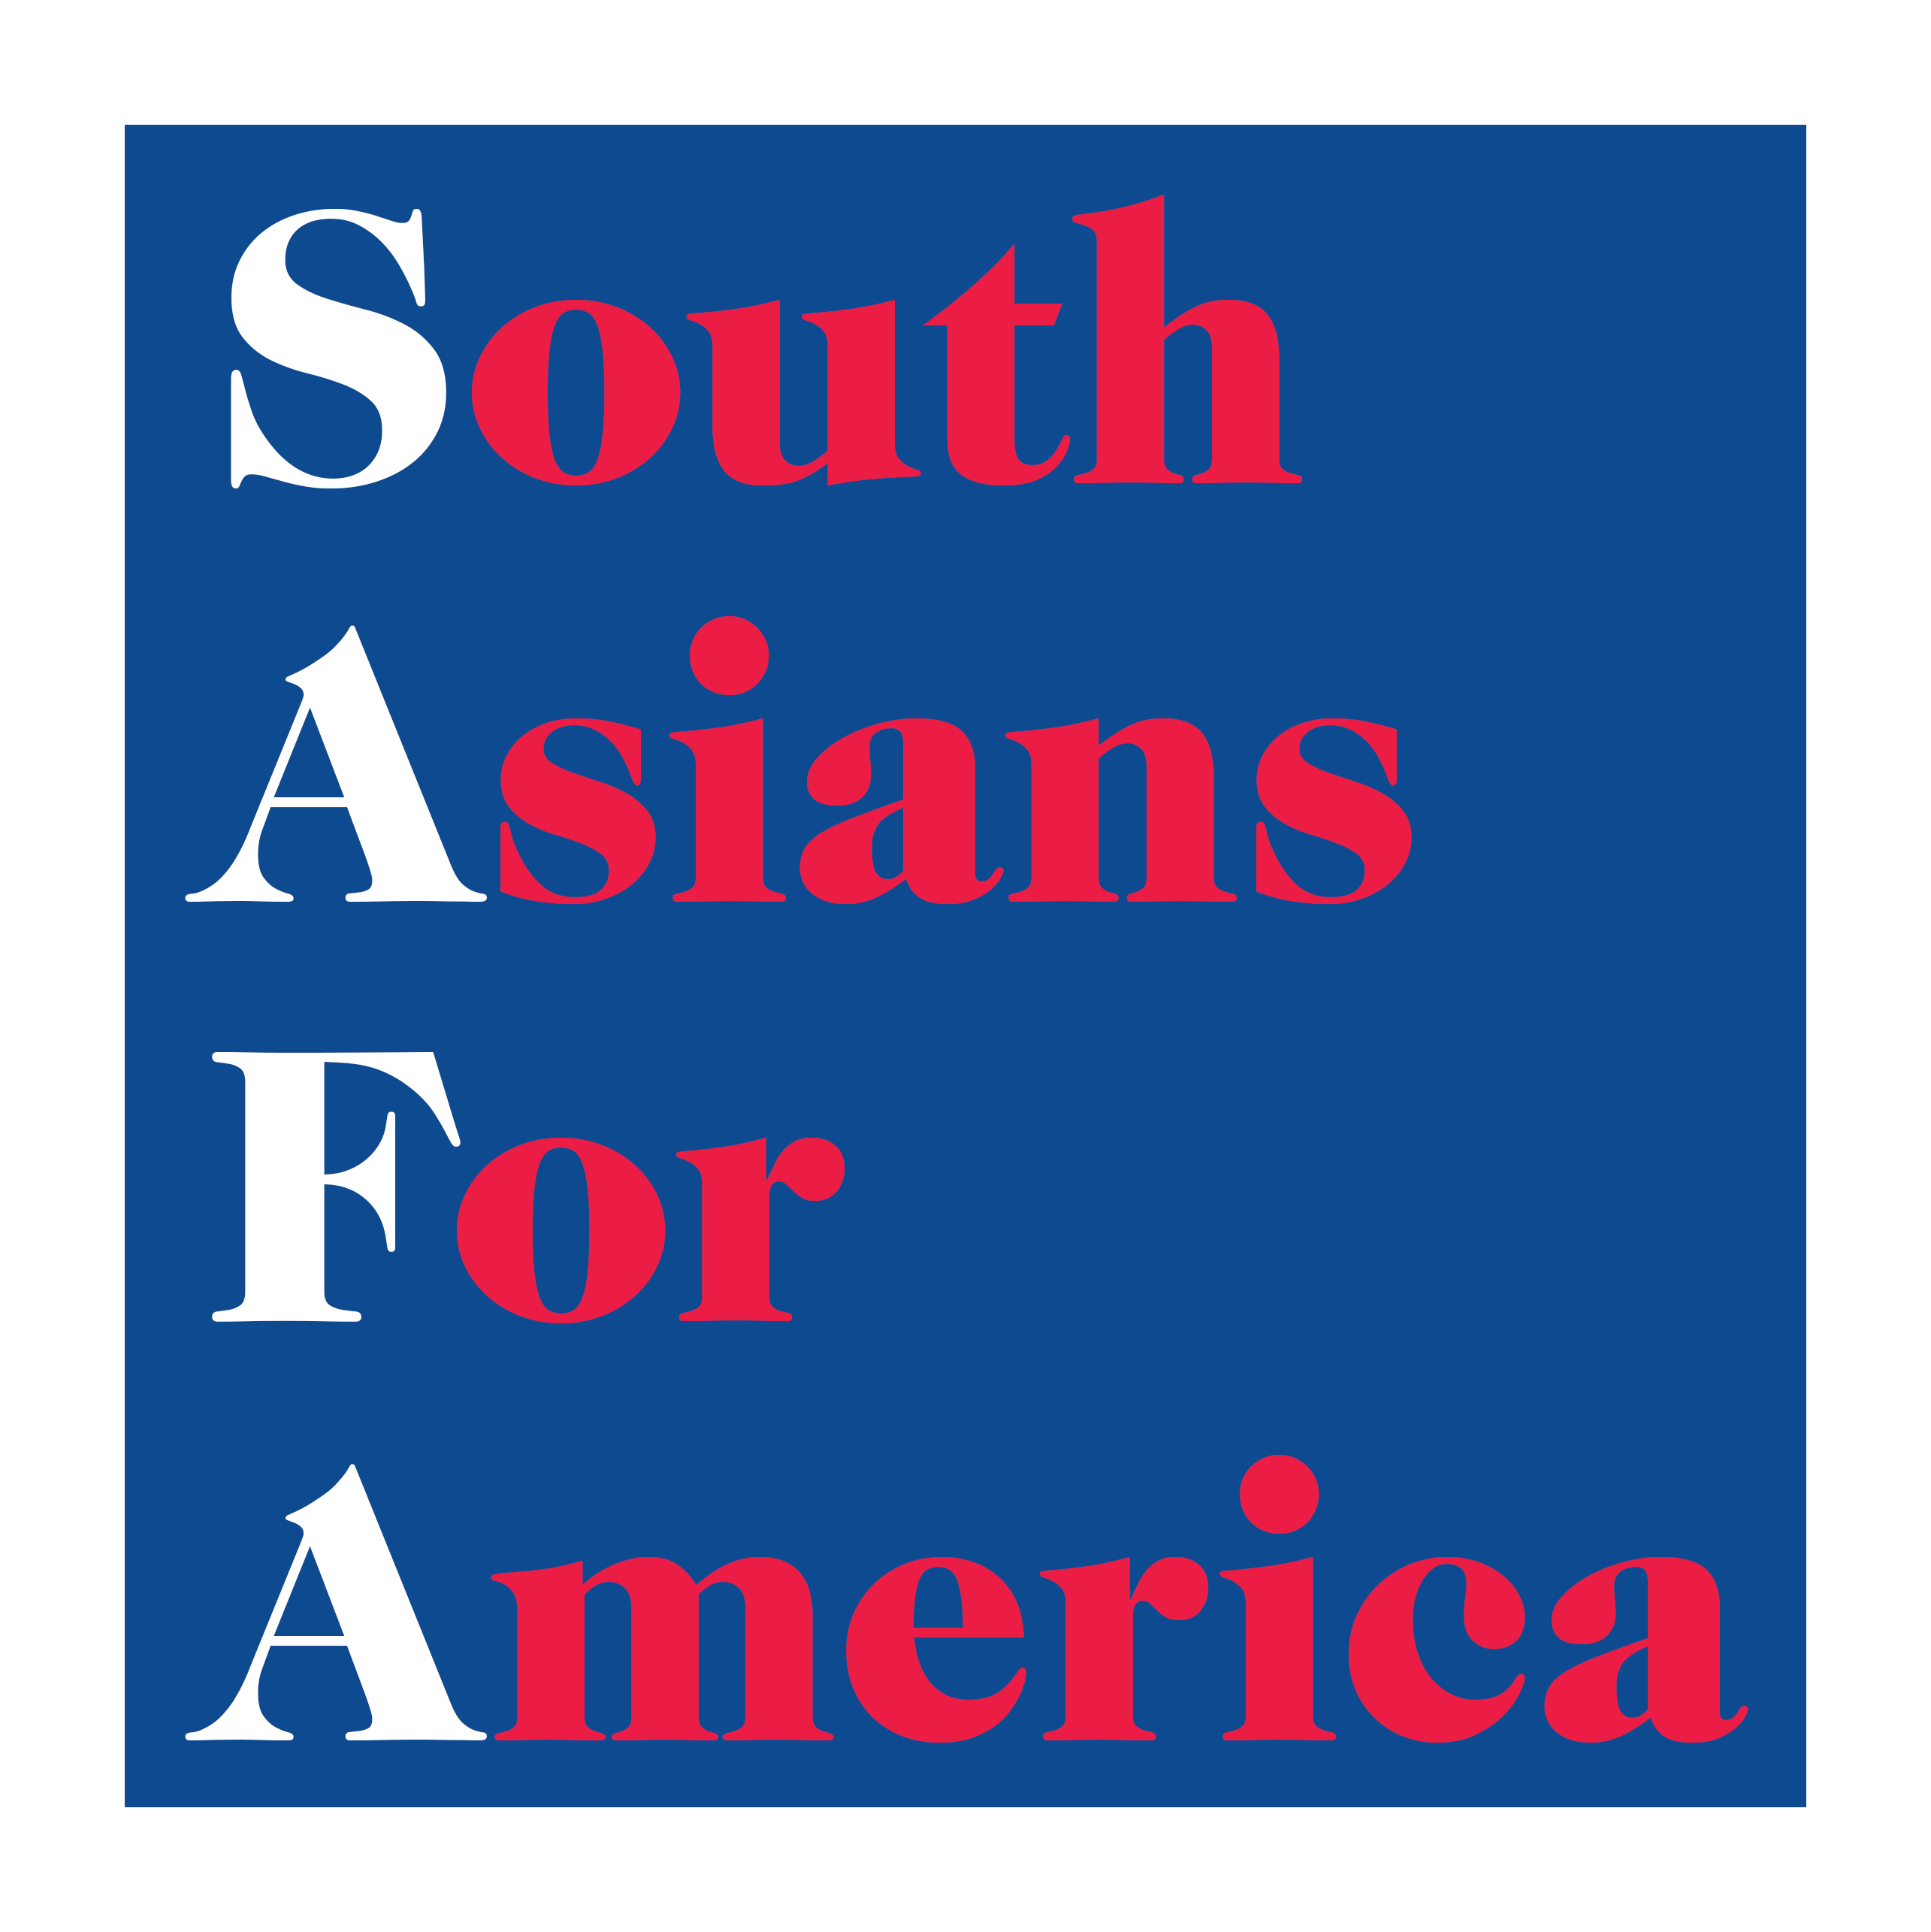 South Asians For America logo